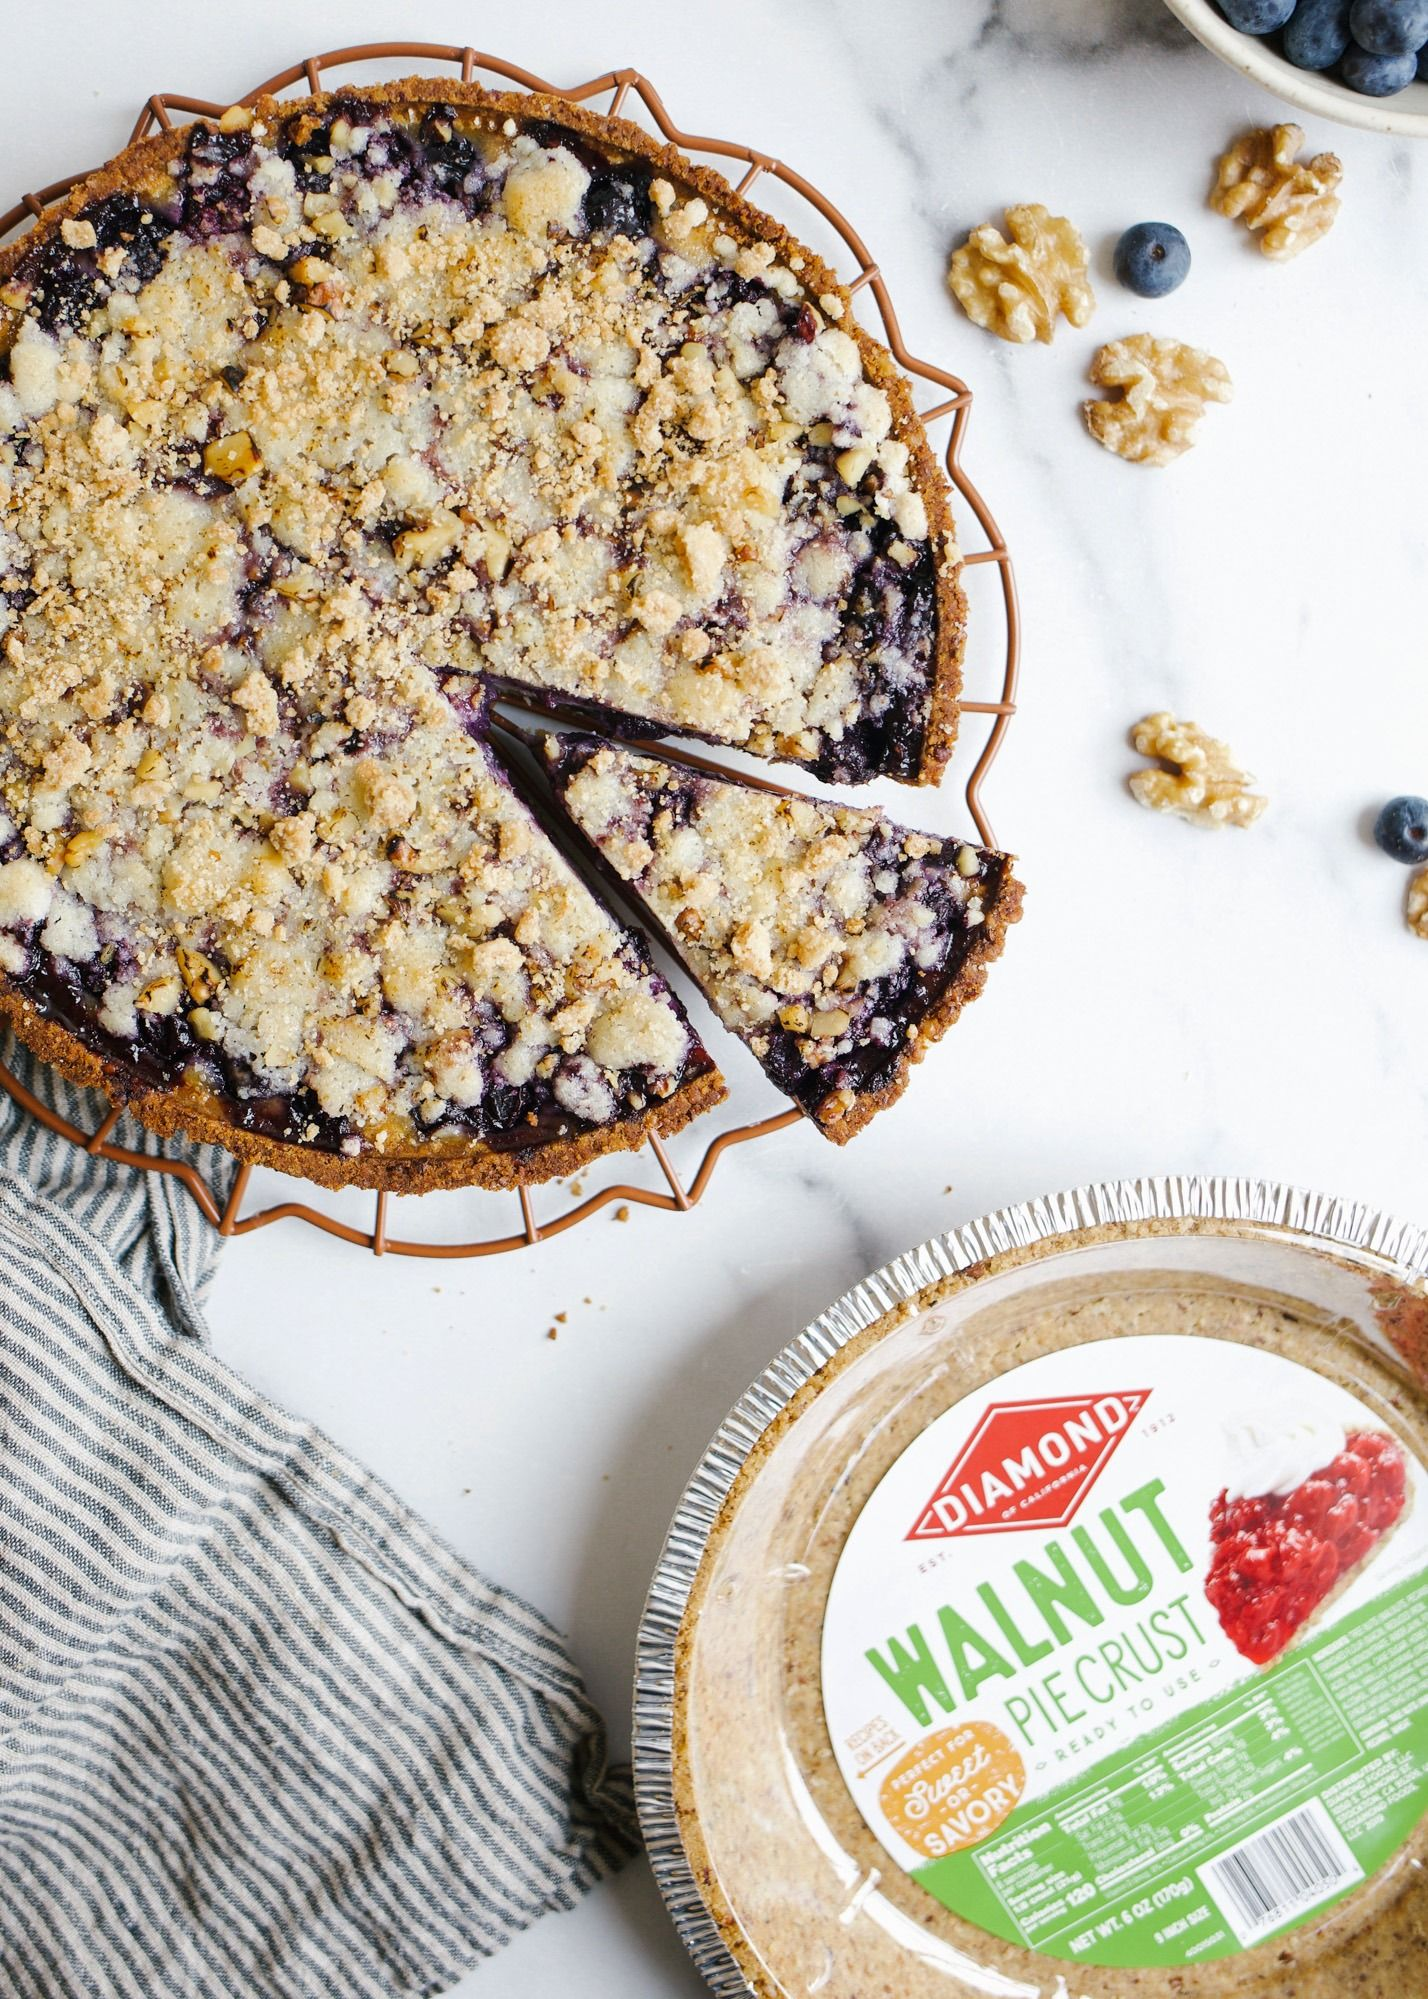 Blueberry Sour Cream Pie Wood Spoon Recipe Walnut Pie Crust Recipe Delicious Pies Walnut Pie